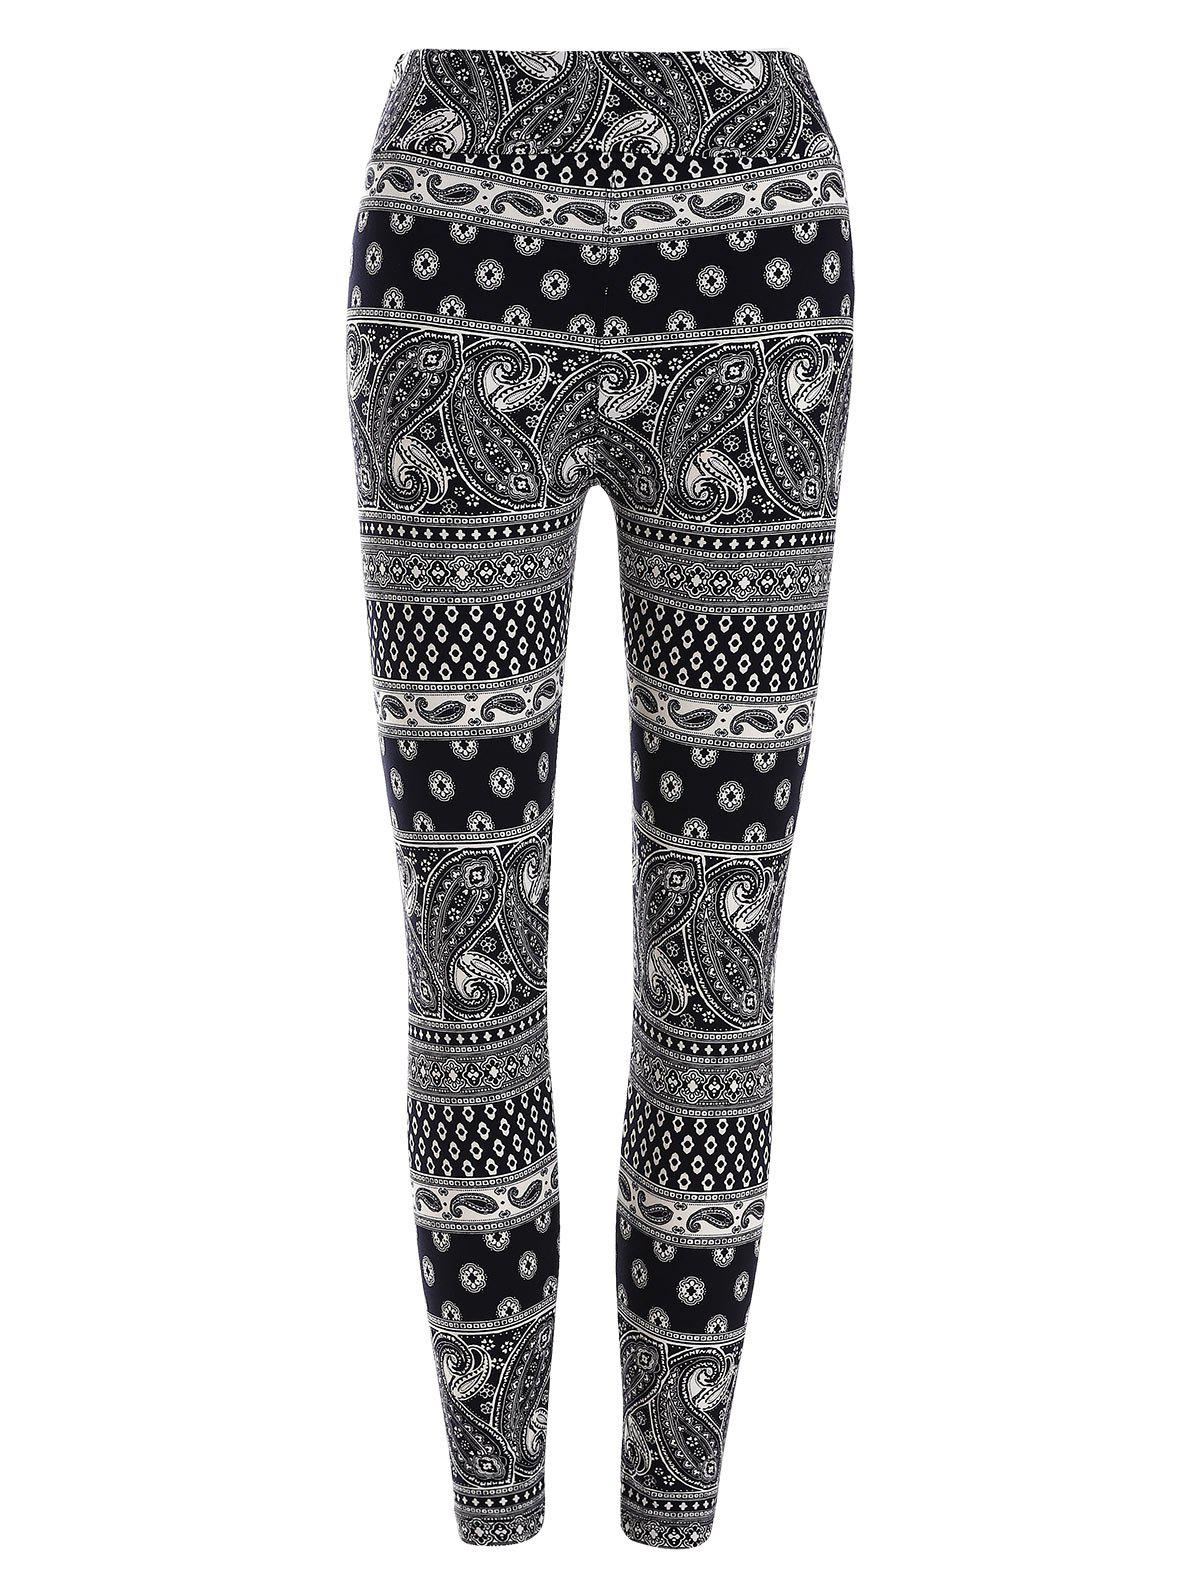 3c92470dbeb6b 49% OFF] High Waisted Paisley Patterned Leggings | Rosegal